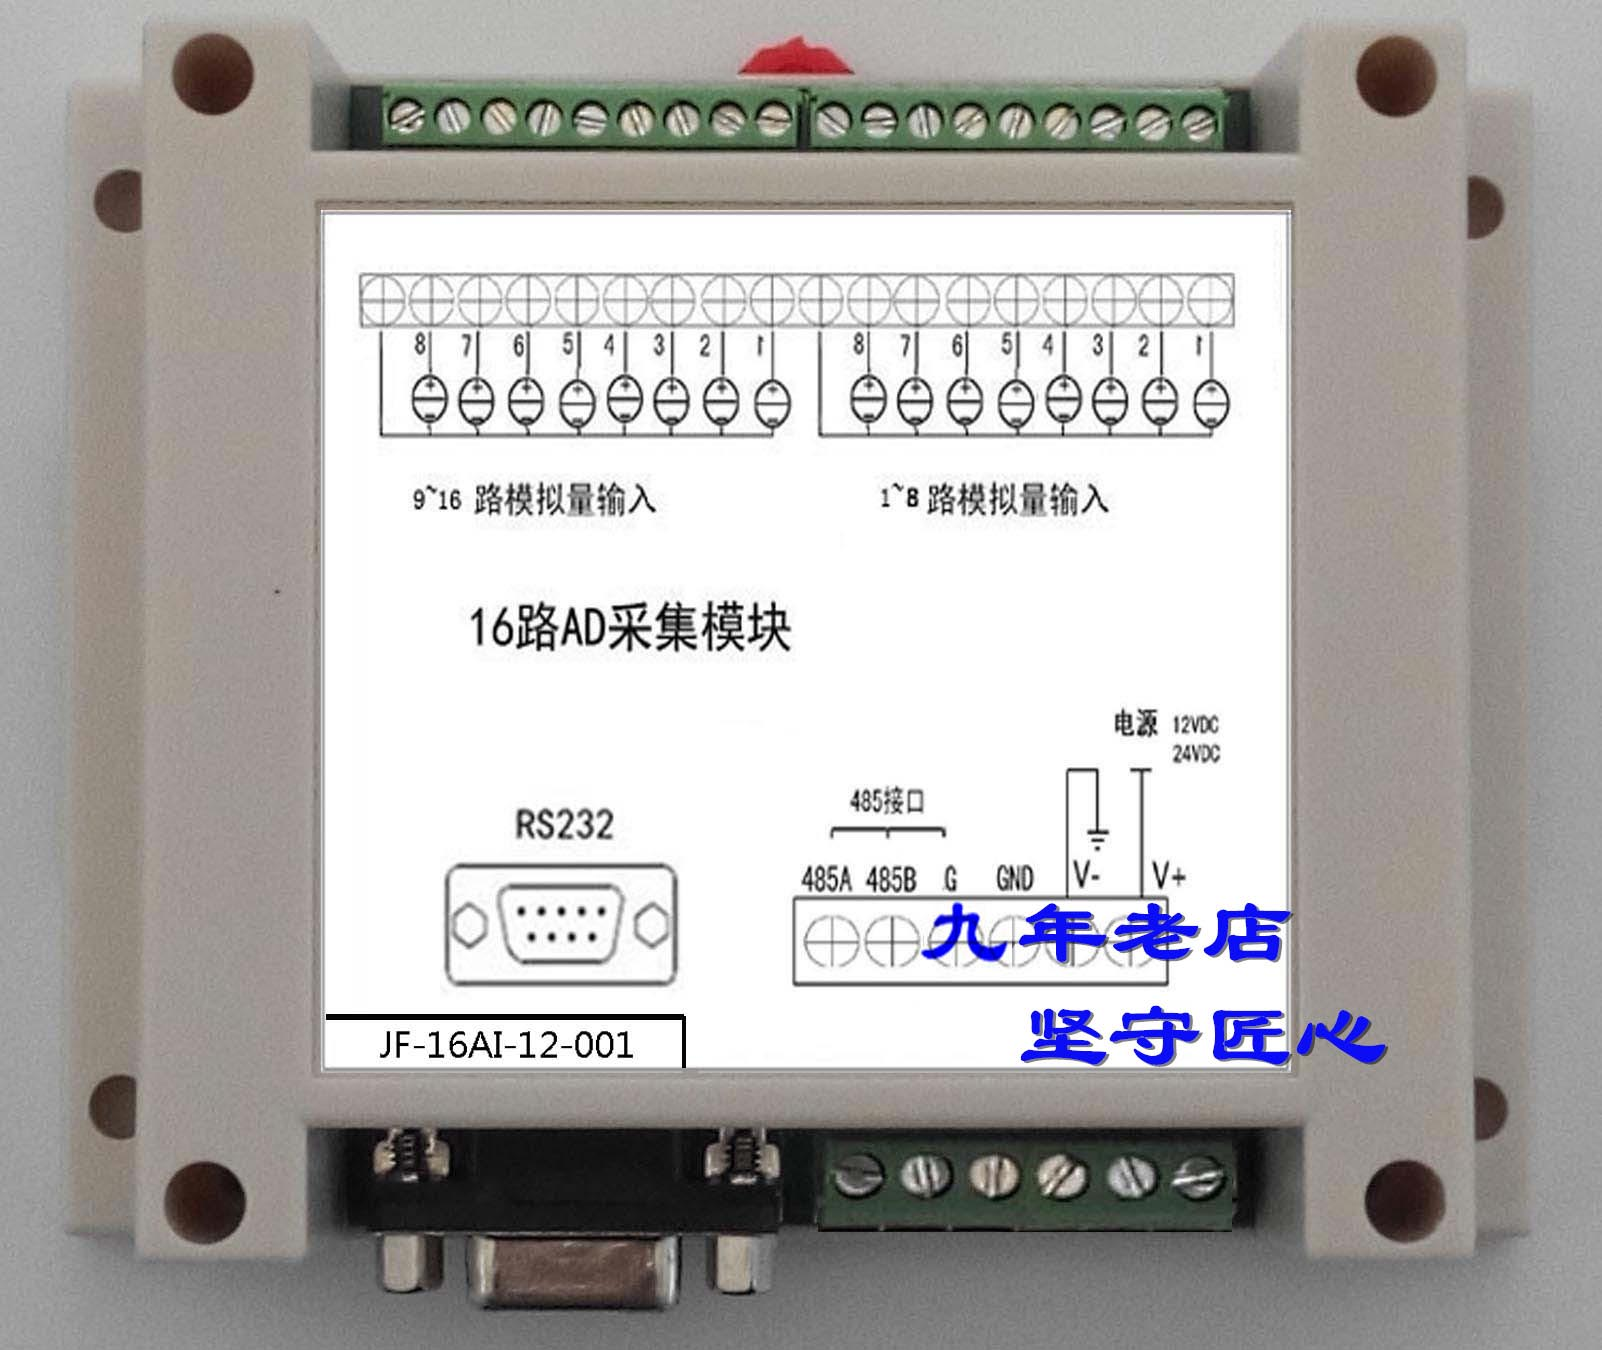 16 channel analog data acquisition module 16AD selection relay MODBUS-RTU support configuration